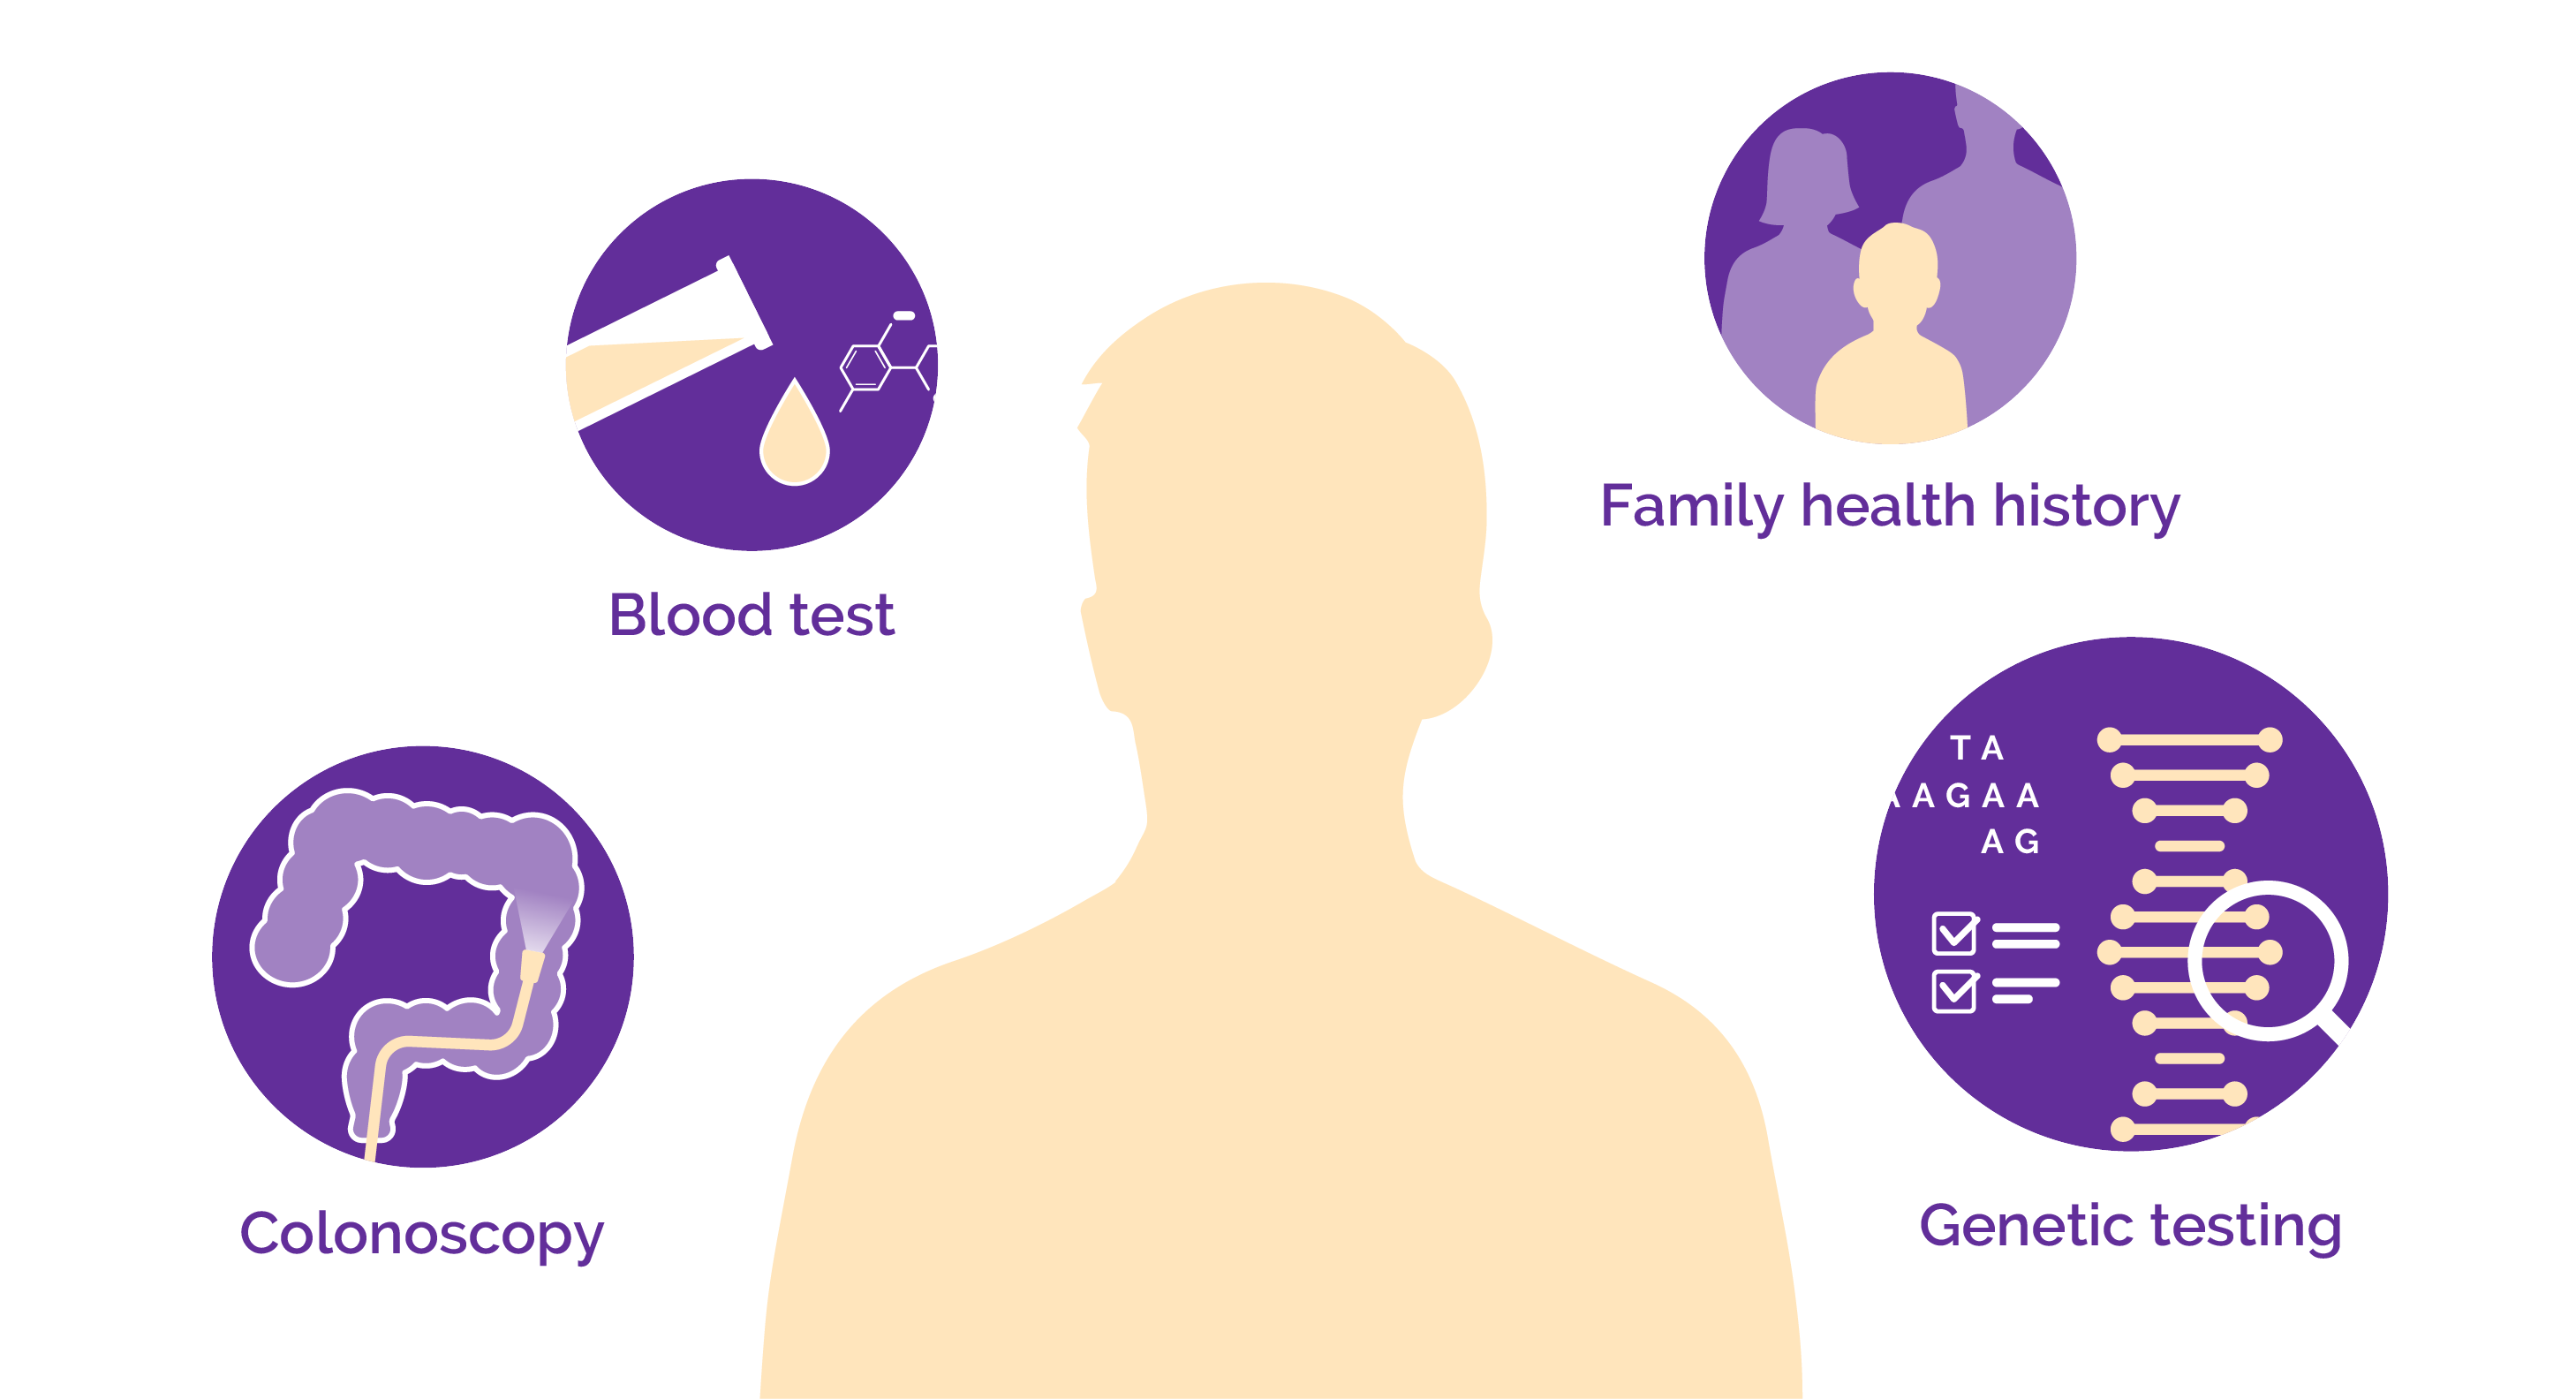 To diagnose Crohn's disease, physical exam, family health history check, colonoscopy, and genetic testing are all necessary.